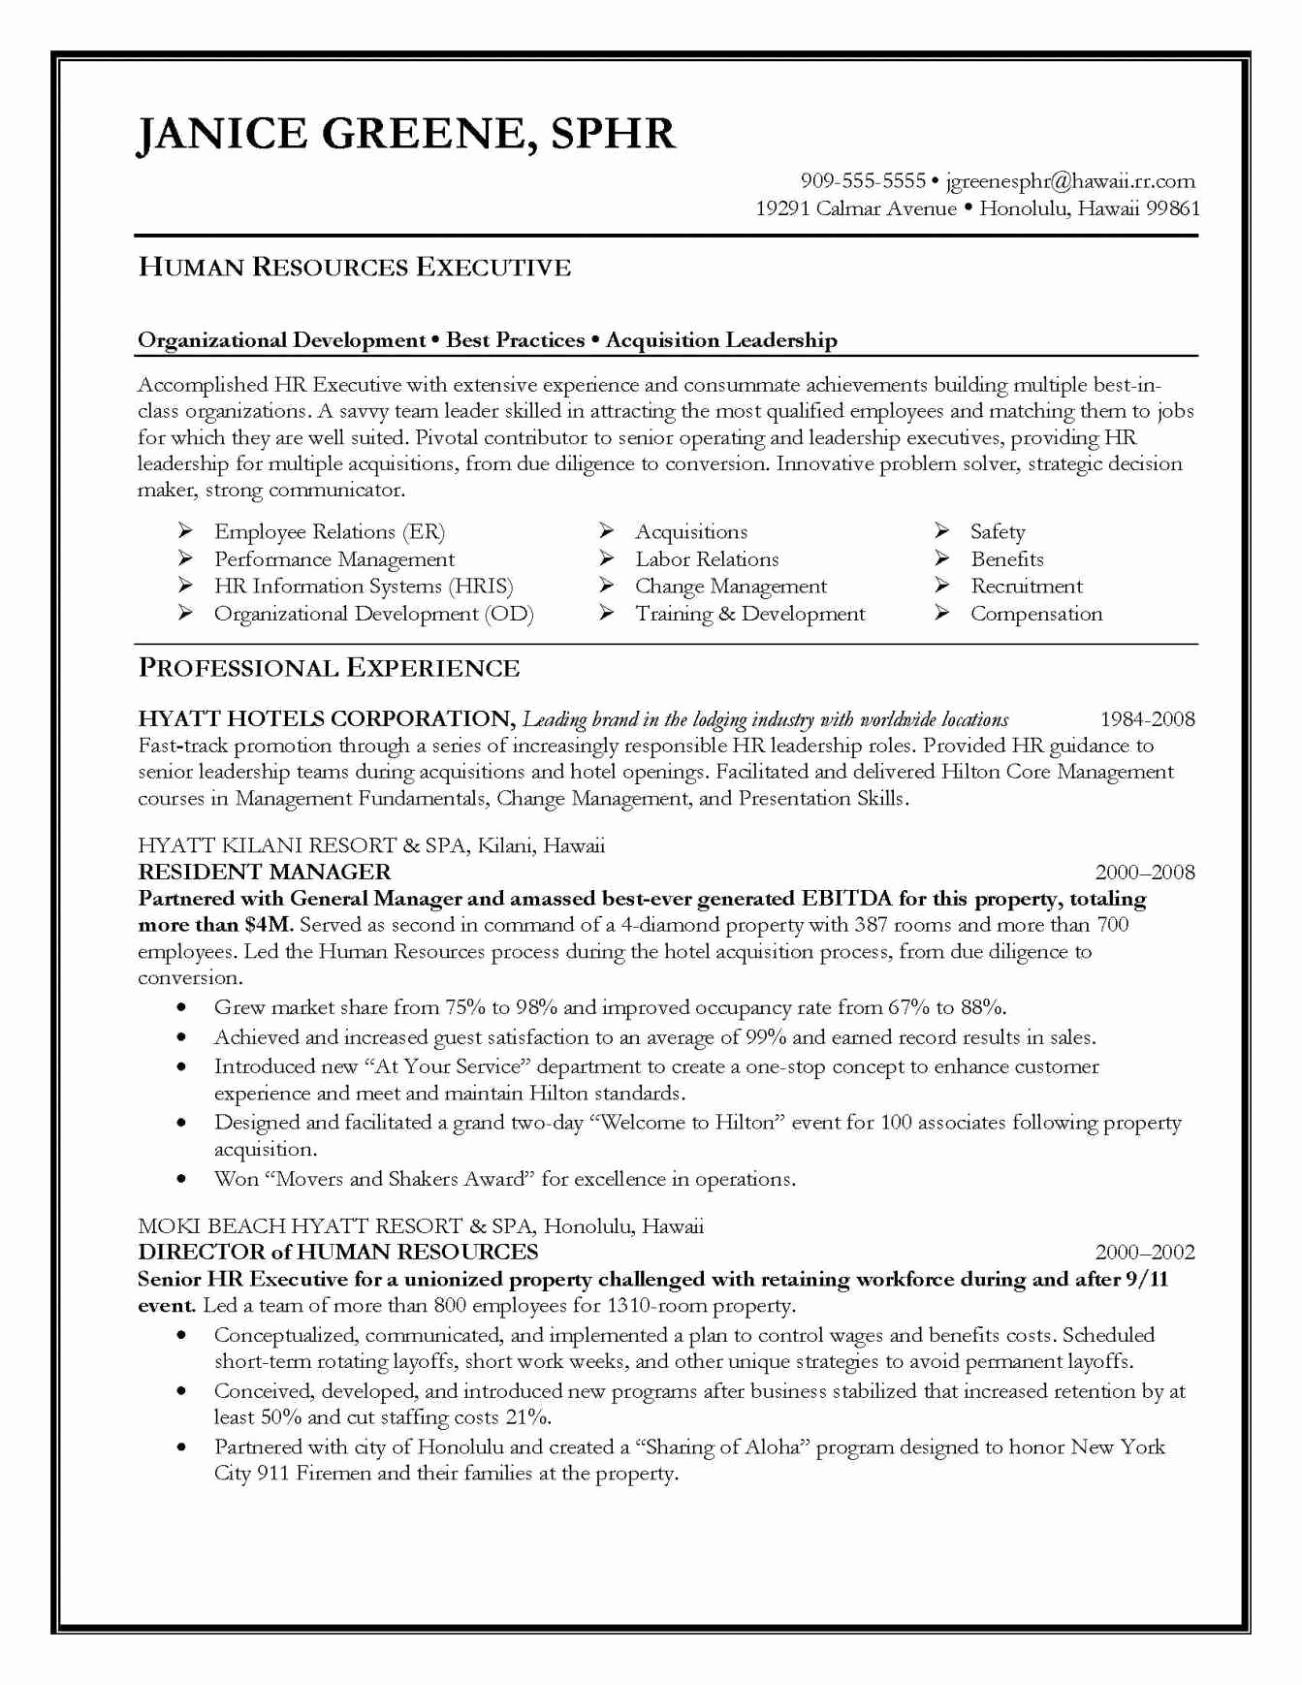 Resume Objective for Career Change Examples - Career Change Resume Sample Awesome Resume Objective Statement Entry